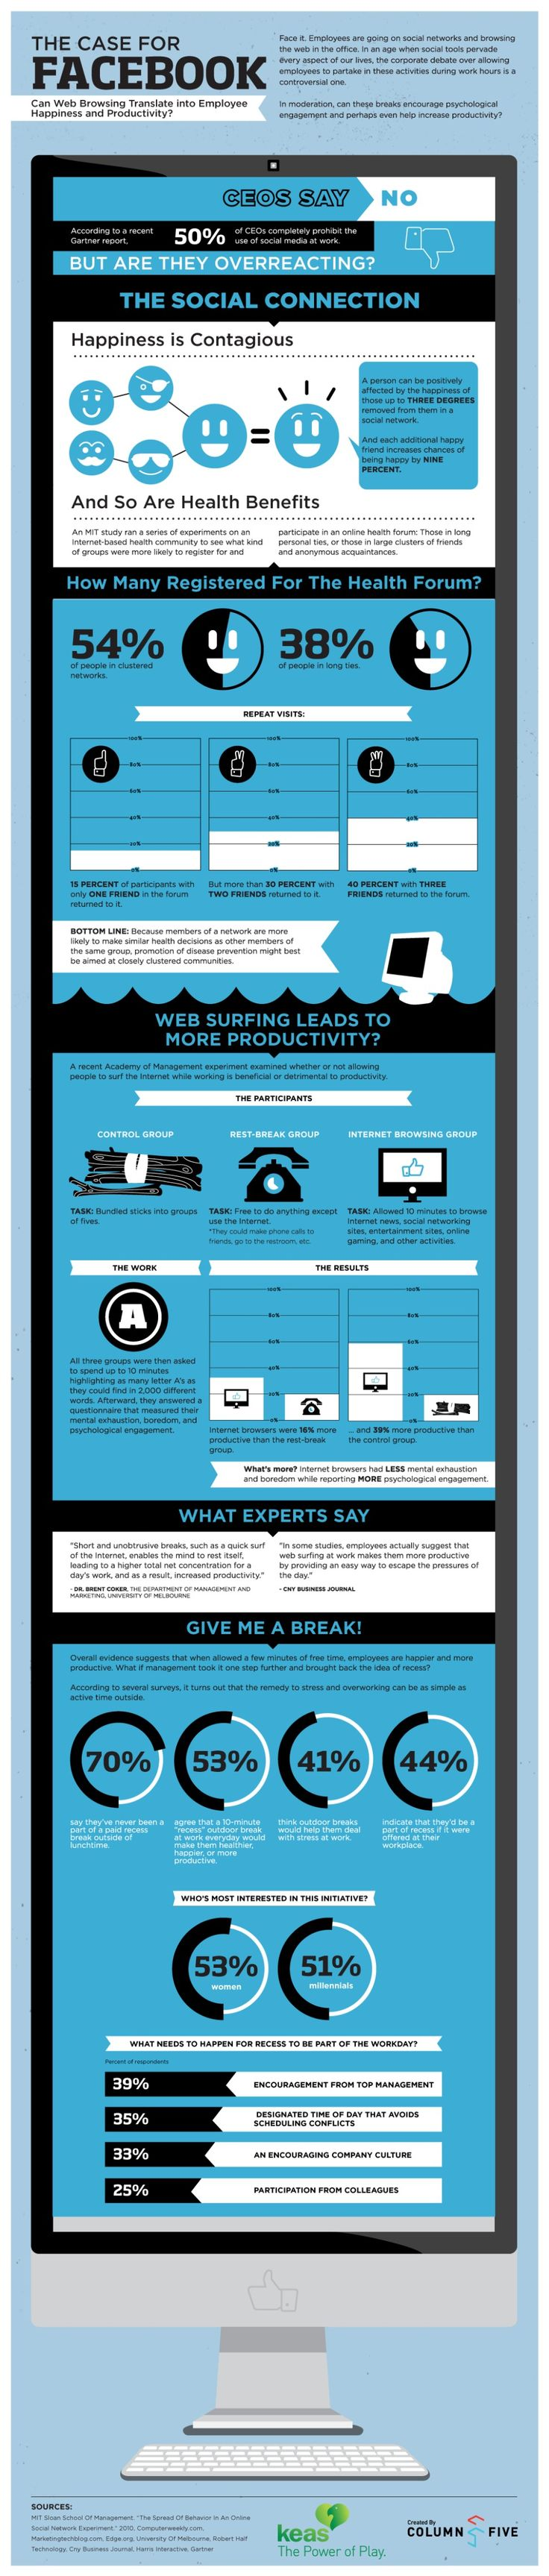 Why CEOs Should Allow #Facebook in the #Workplace [INFOGRAPHIC]